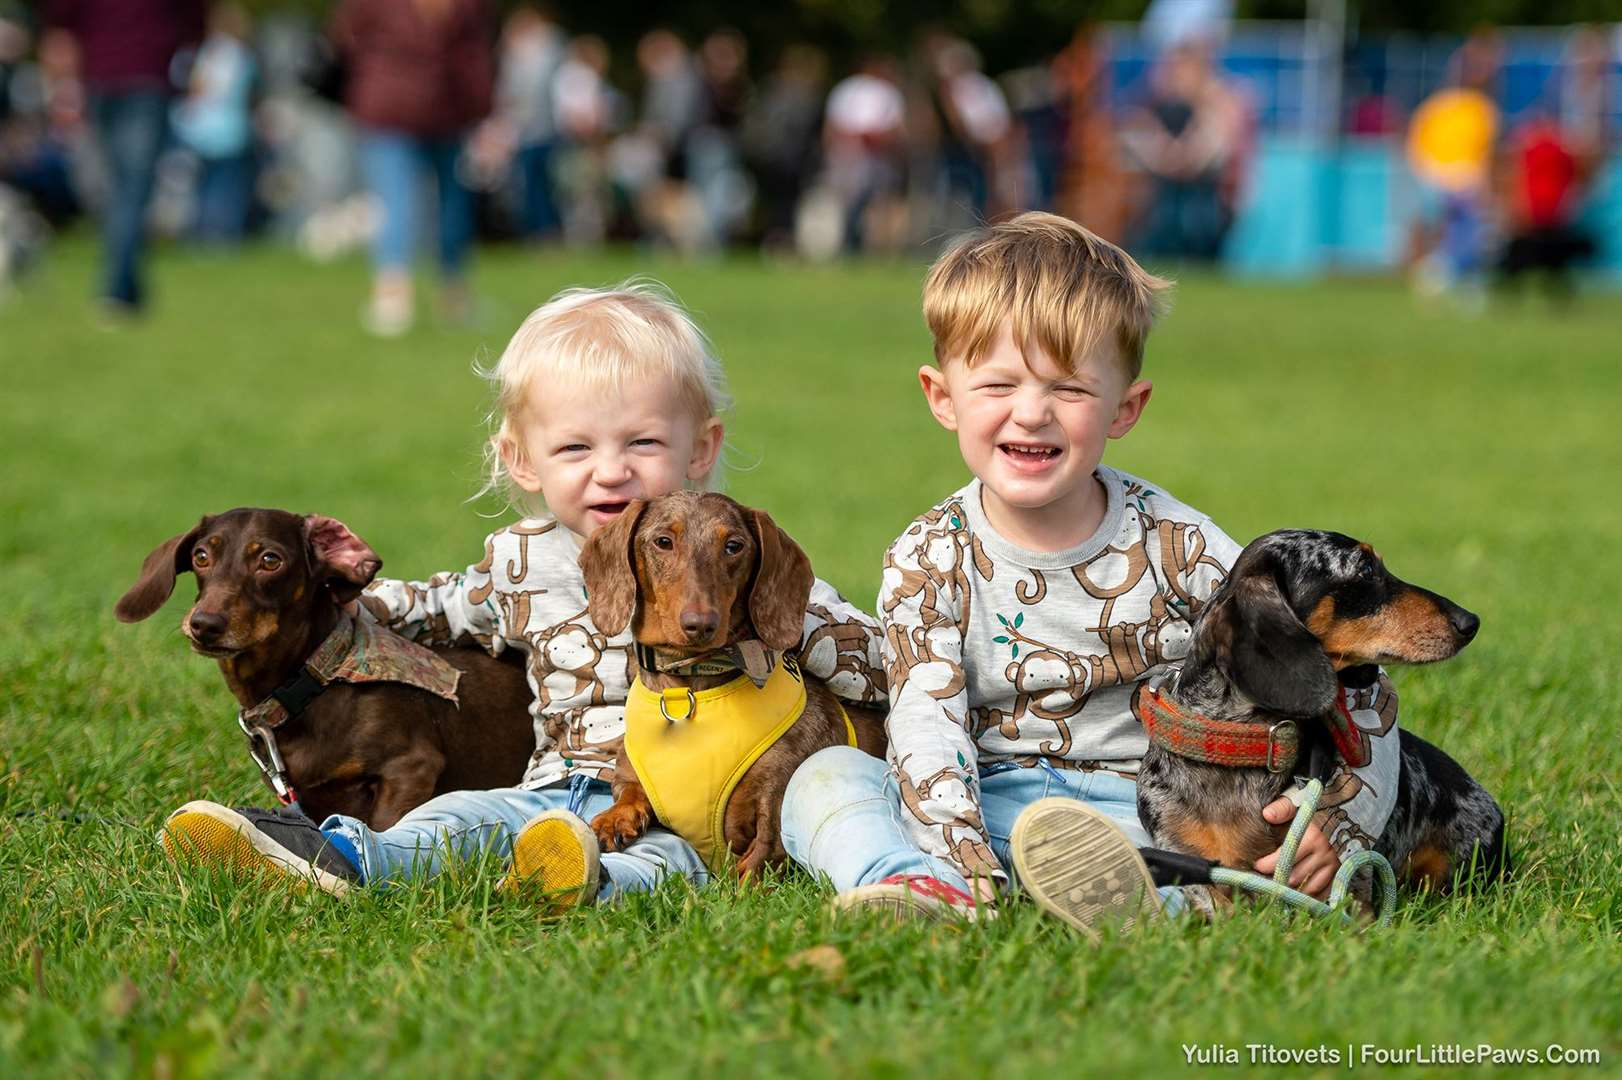 Paws in the Park is taking place this weekend but tickets must be bought in advance